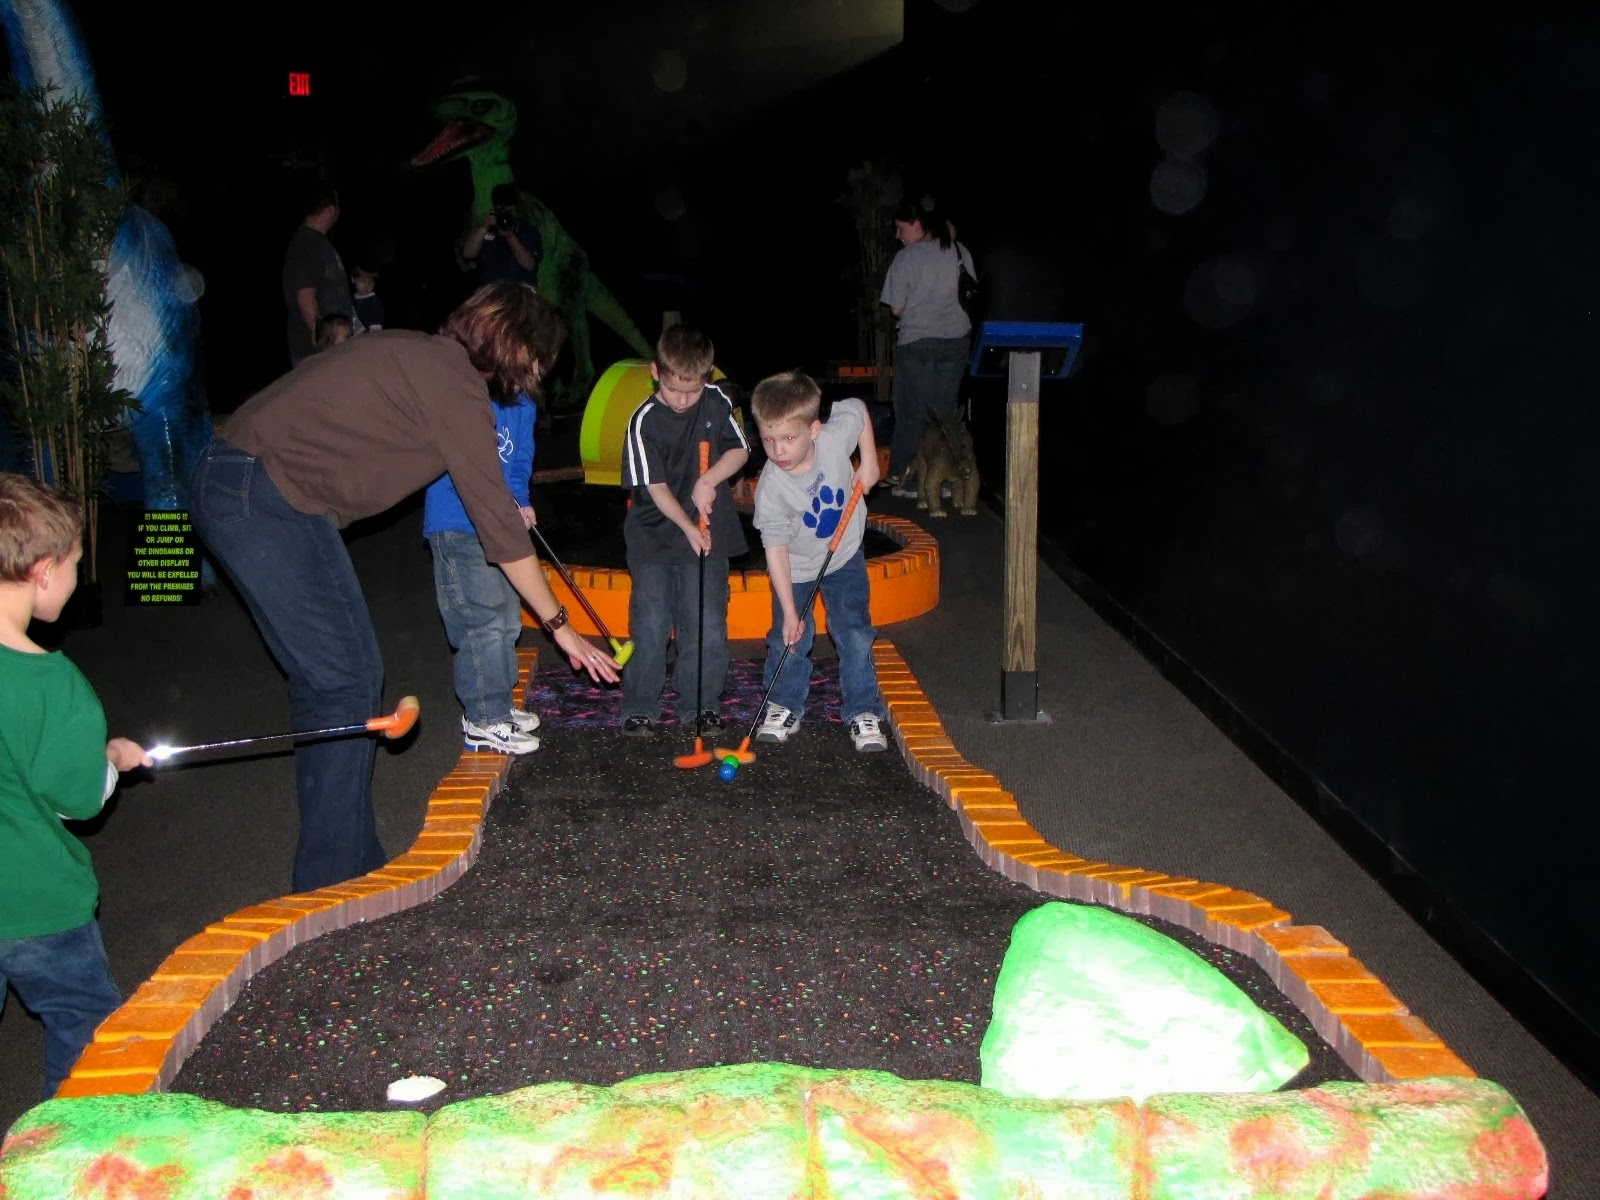 Take These Top 5 Birthday Party Venues For Youngsters As Examples They Make The Grade Their Setting Offerings And Affordable Prices